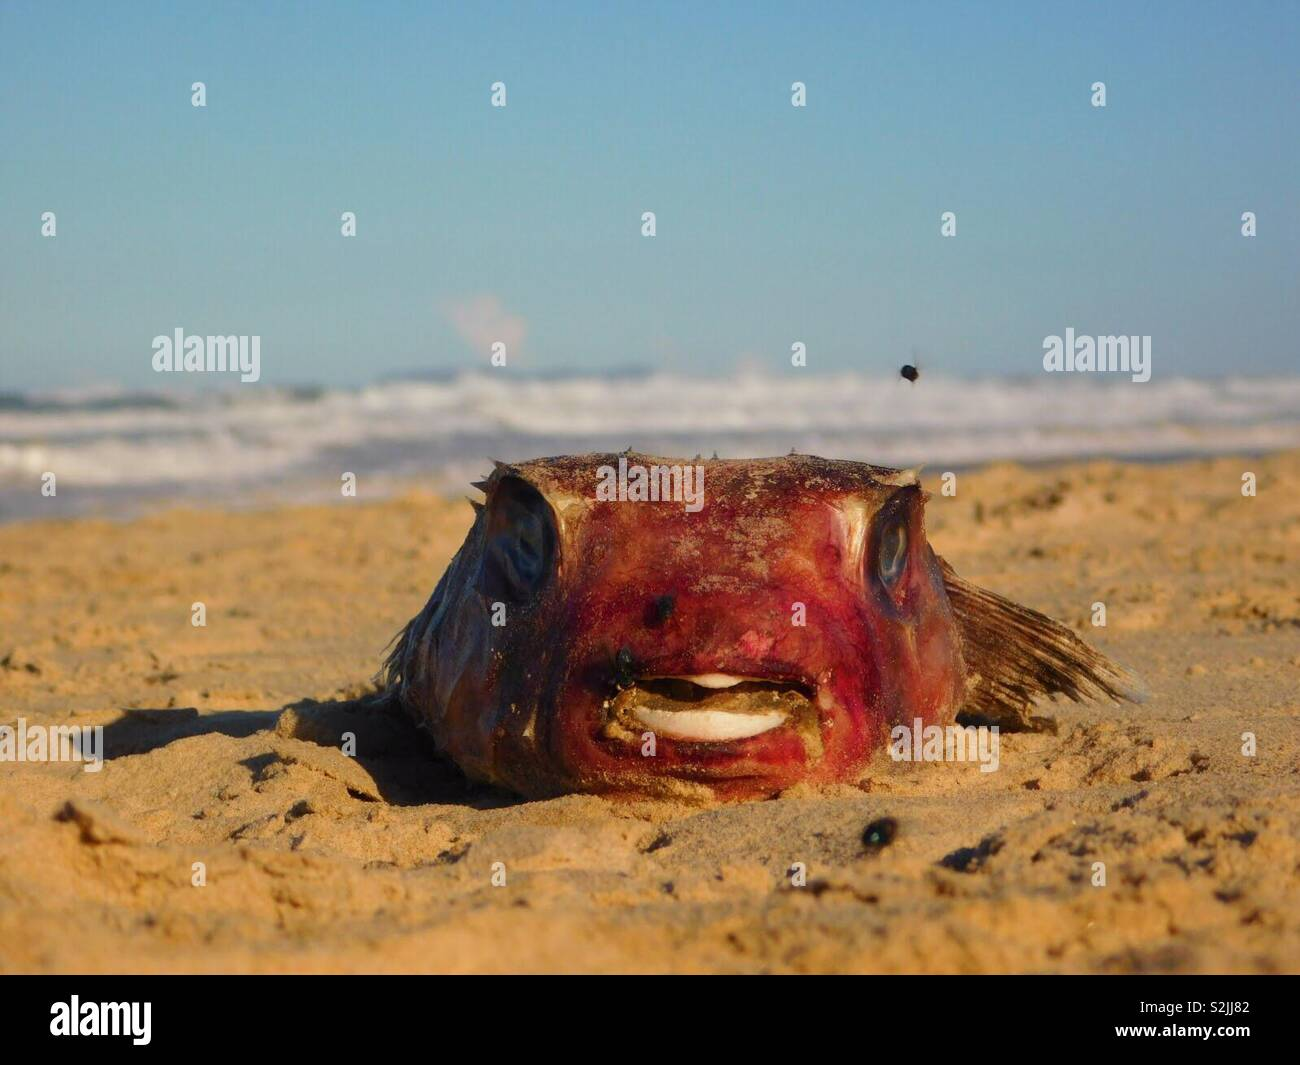 Dead Fly Stock Photos & Dead Fly Stock Images - Page 2 - Alamy